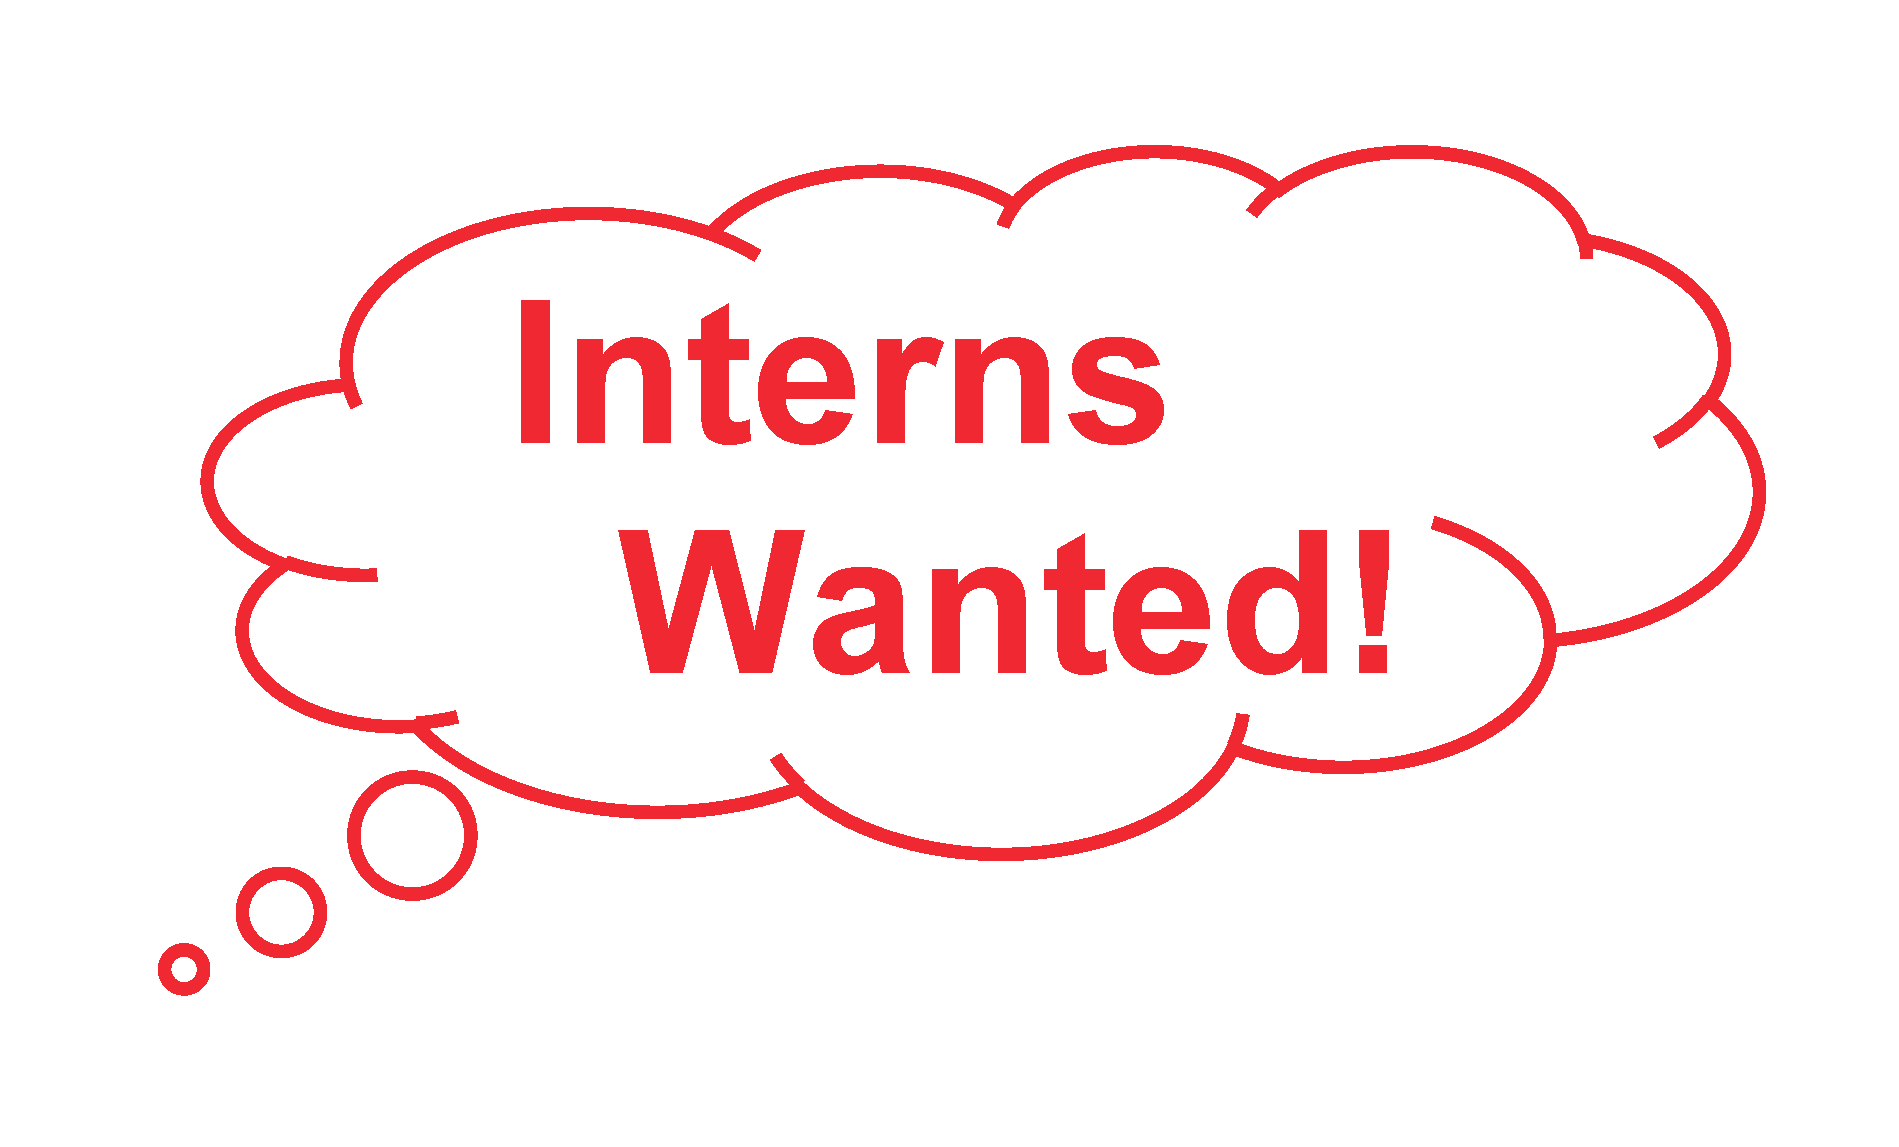 Interns Wanted Graphic